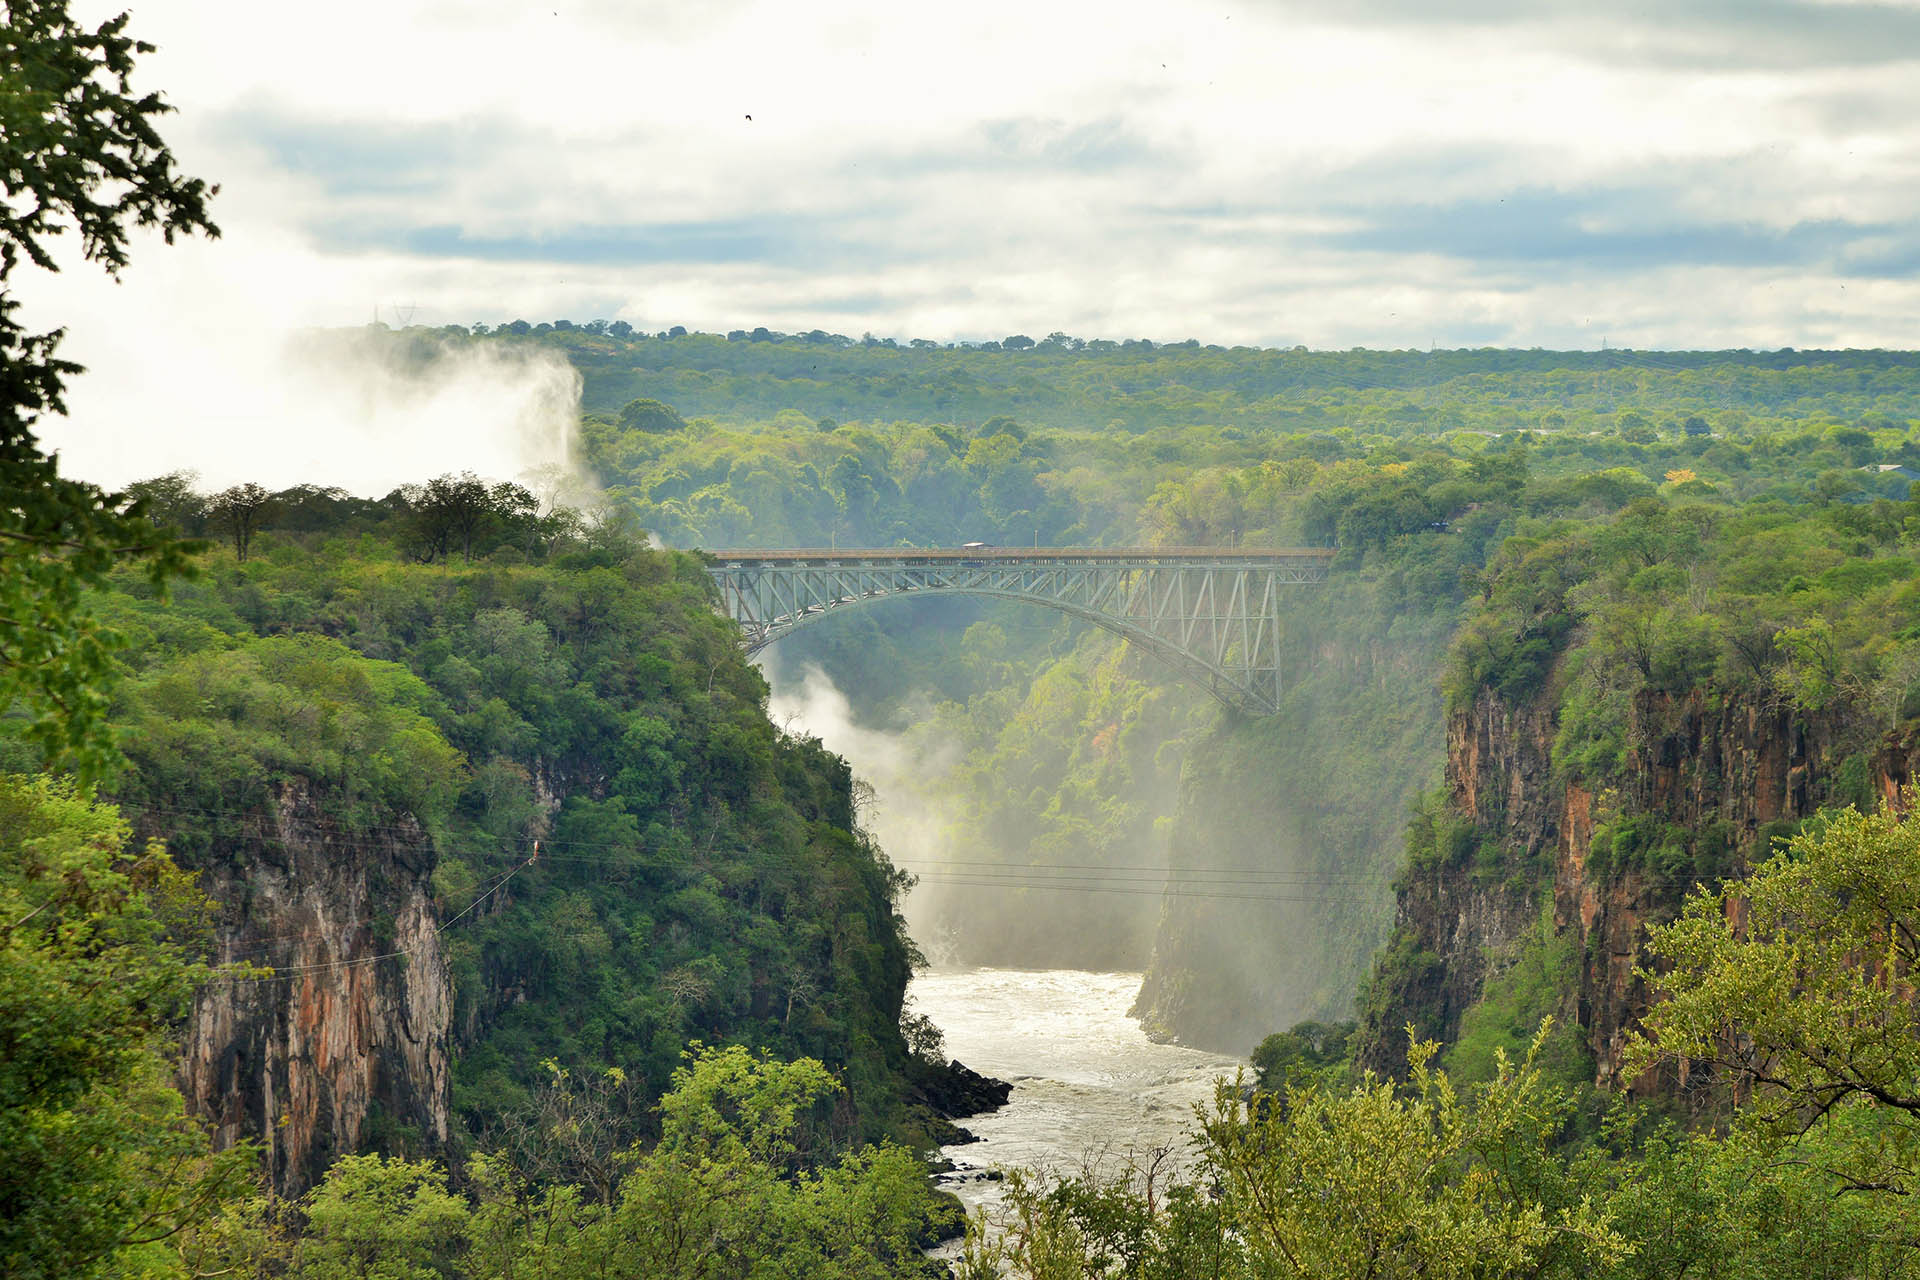 family holidays victoria-falls-lake-malawi-zambia-malawian-style-malawi-adventures-experiences-specialist-tour-operator-vic-falls